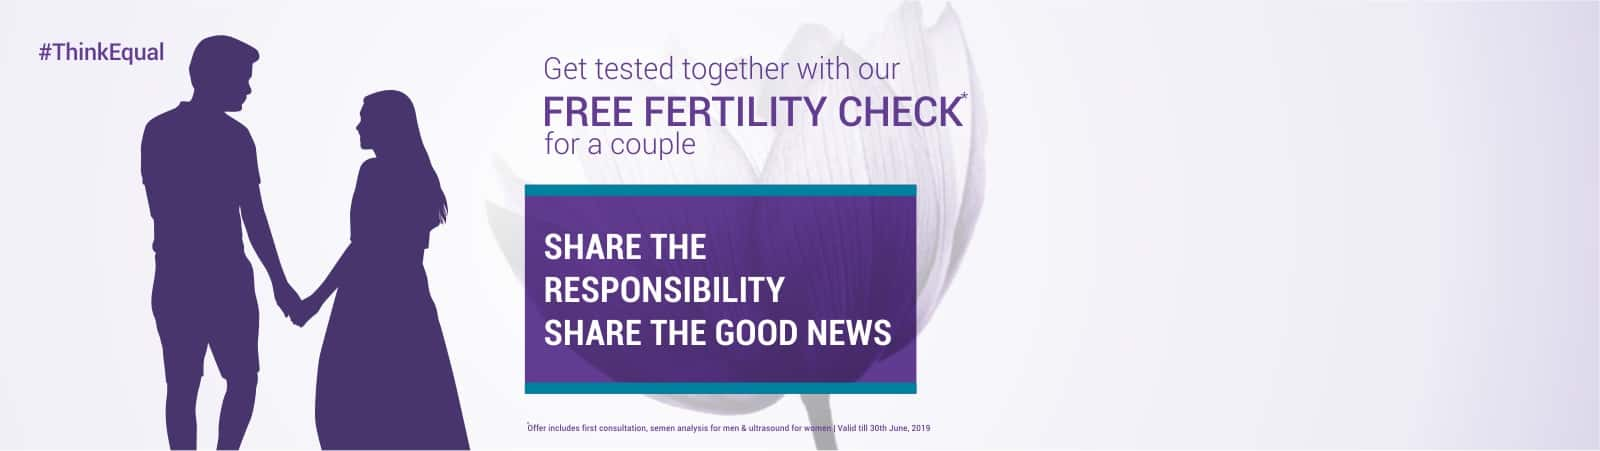 Fertility-Check-Web-Banner-30thJune